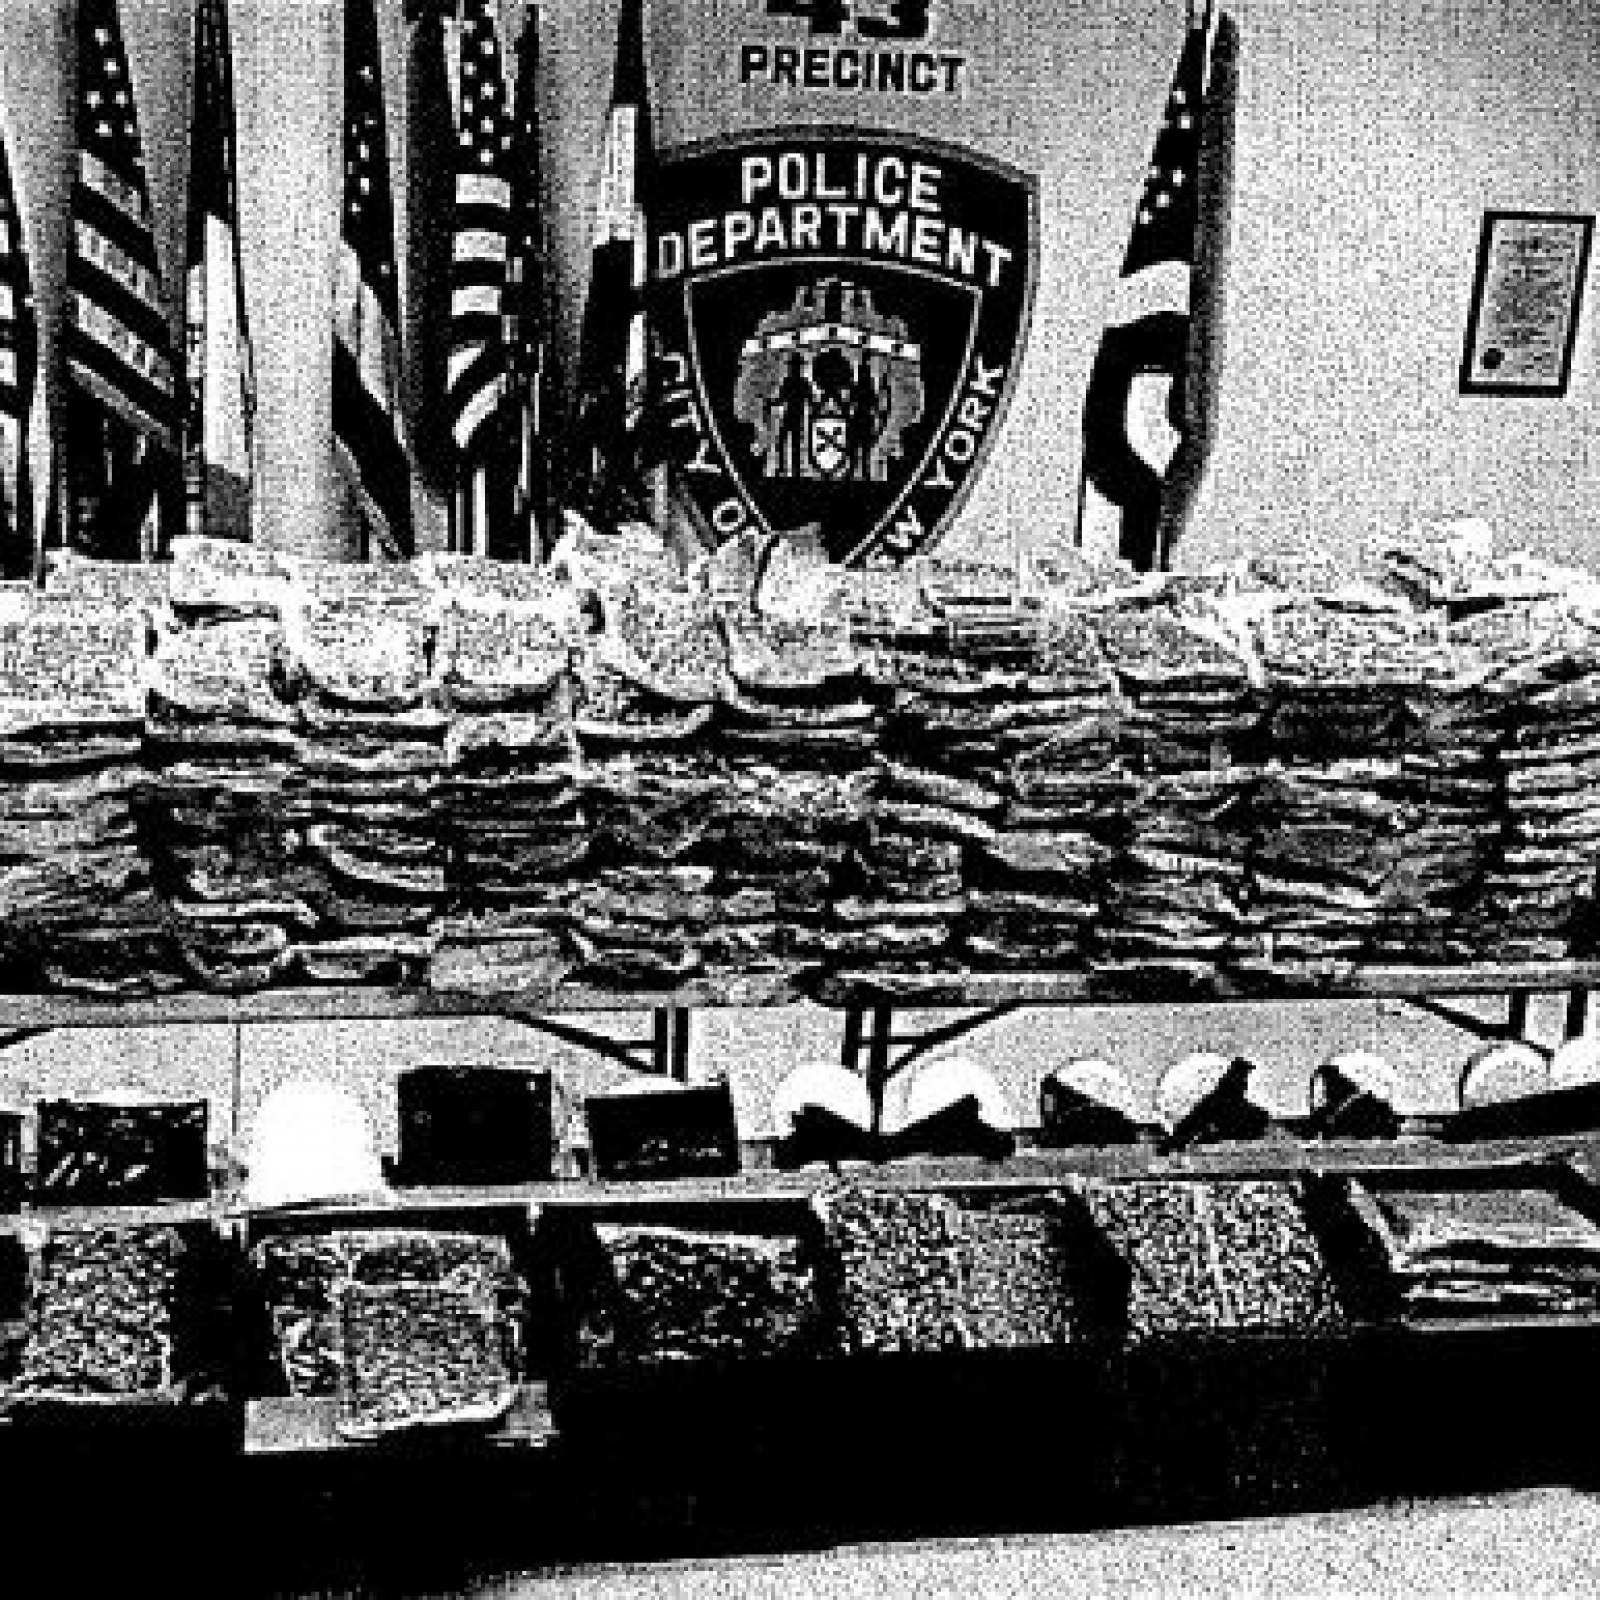 Drug Ring That Used FedEx Shipped $22 Million Worth of